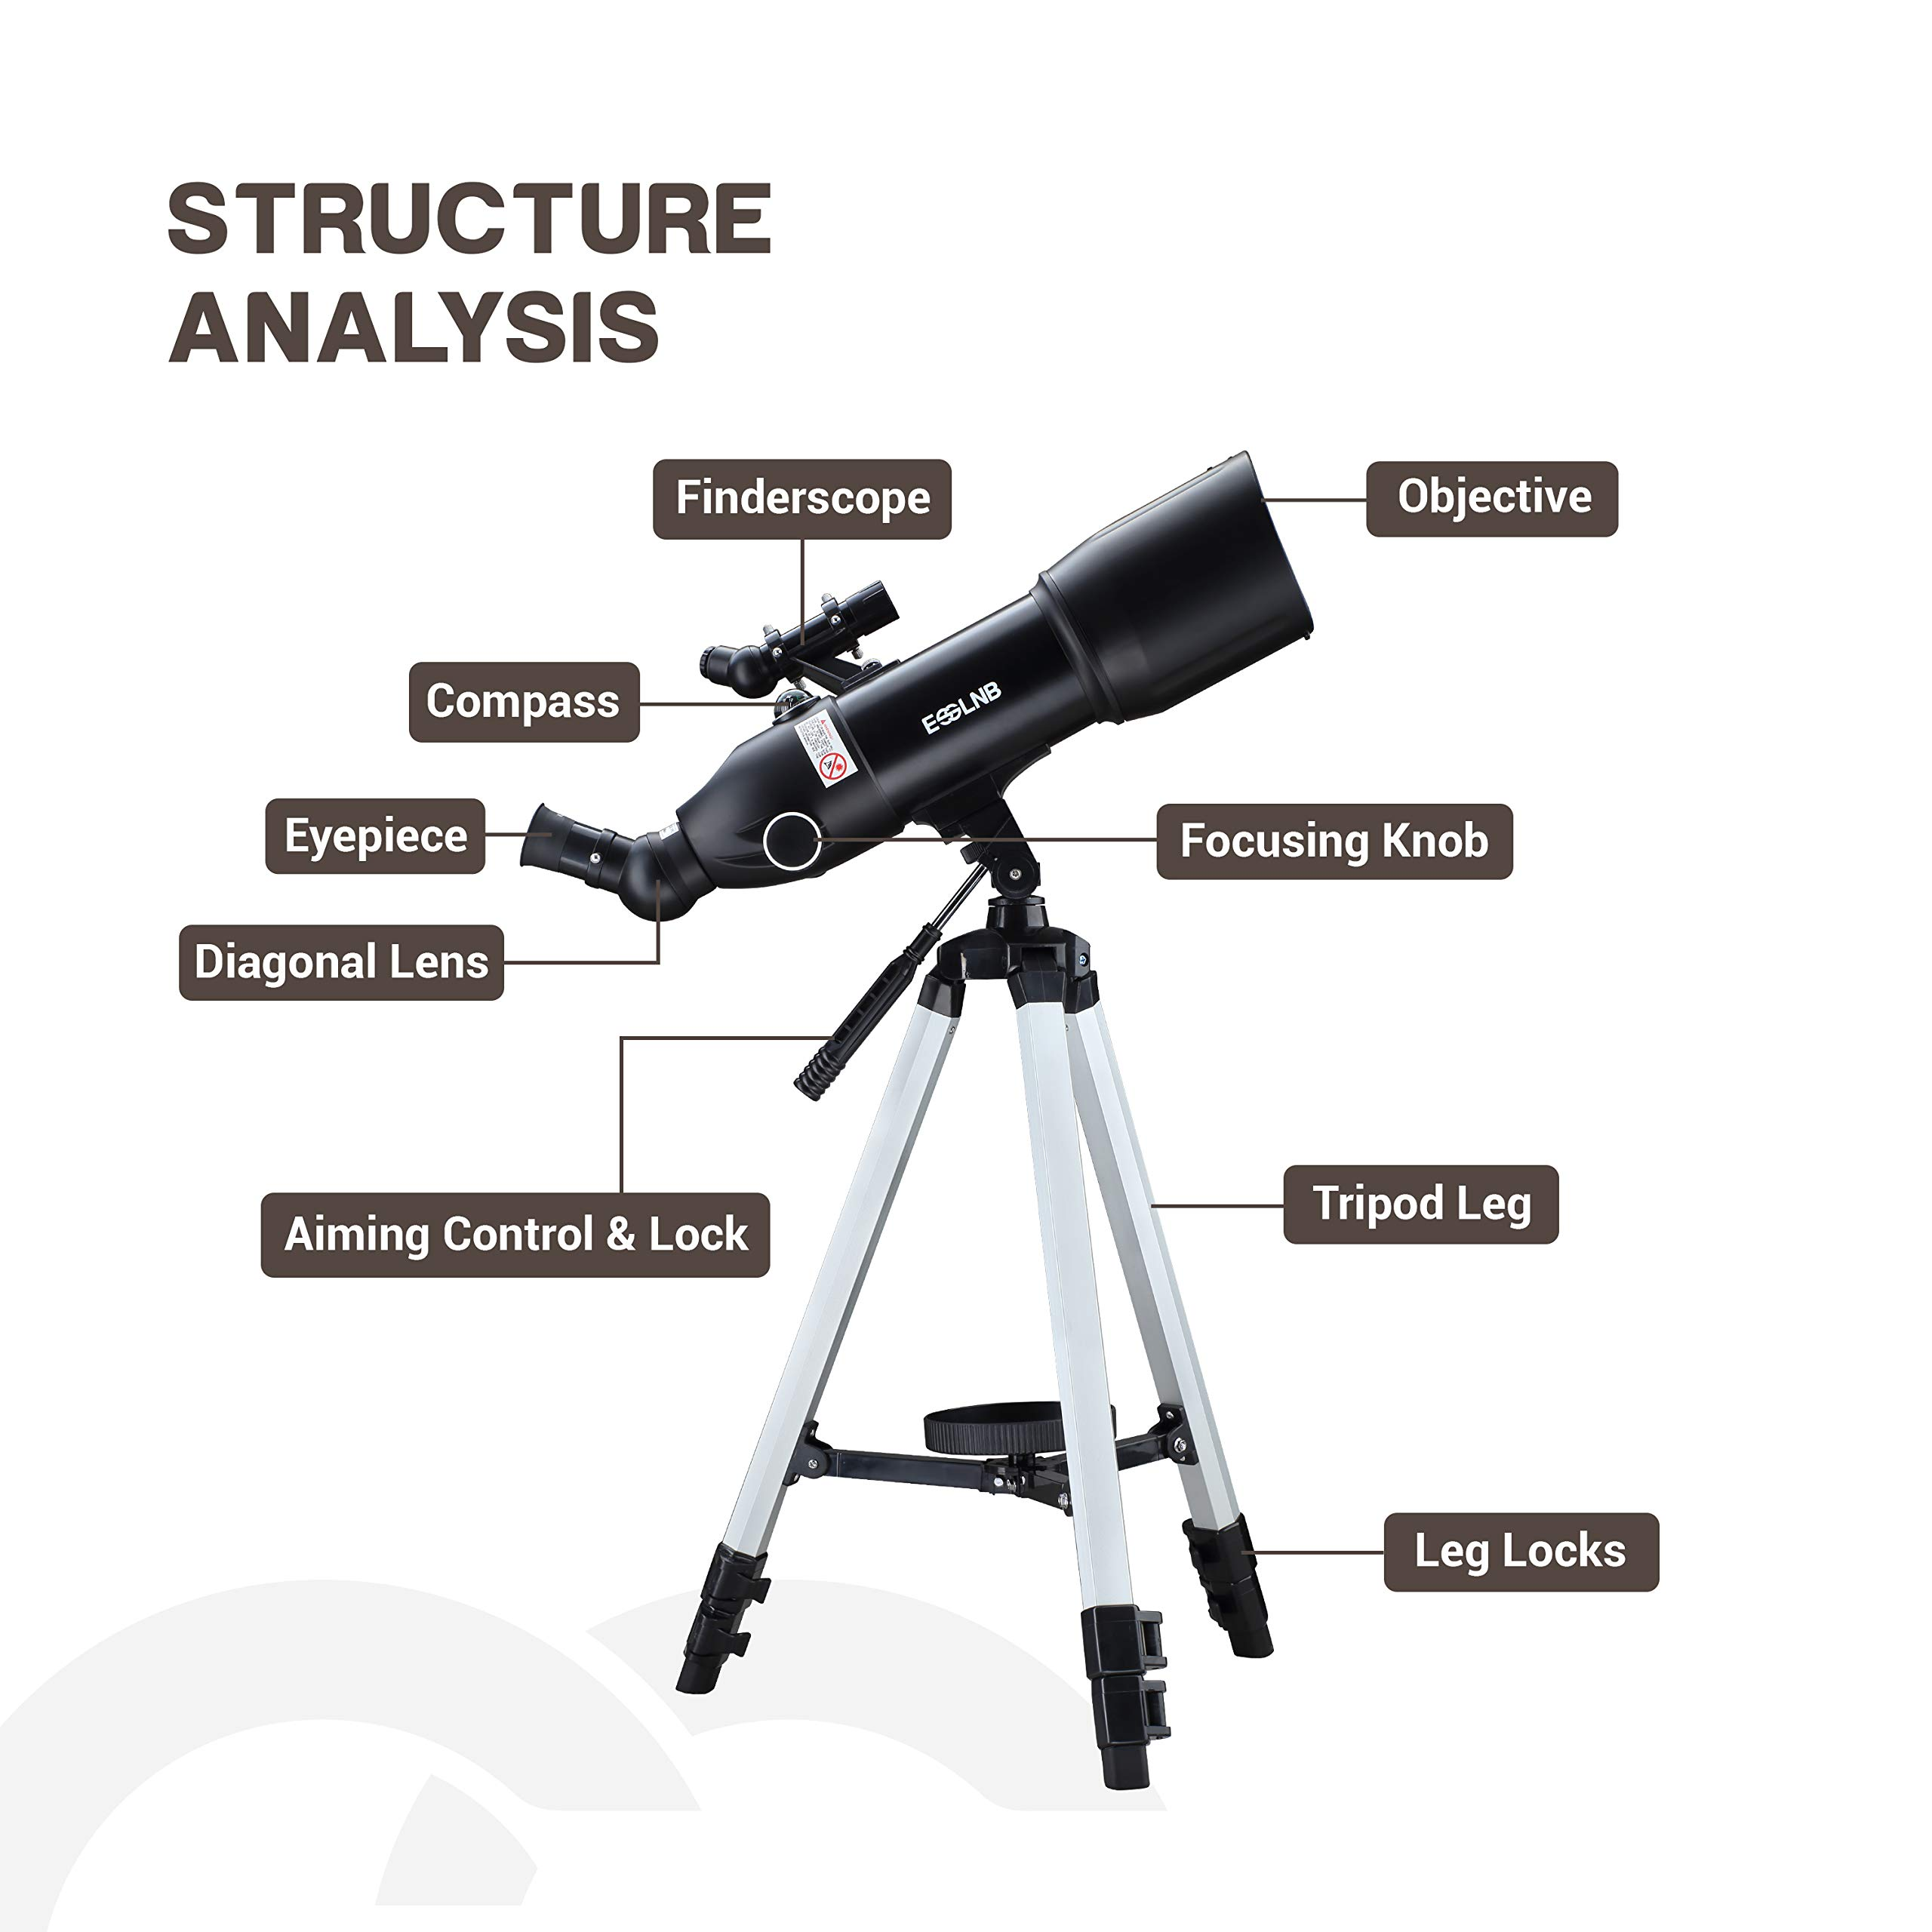 ESSLNB Telescopes for Adults Astronomy Beginners Kids 400X80mm with 10X Smartphone Adapter Adjustable Tripod Case and Moon Filter Erect-Image Diagonal Prism by ESSLNB (Image #9)